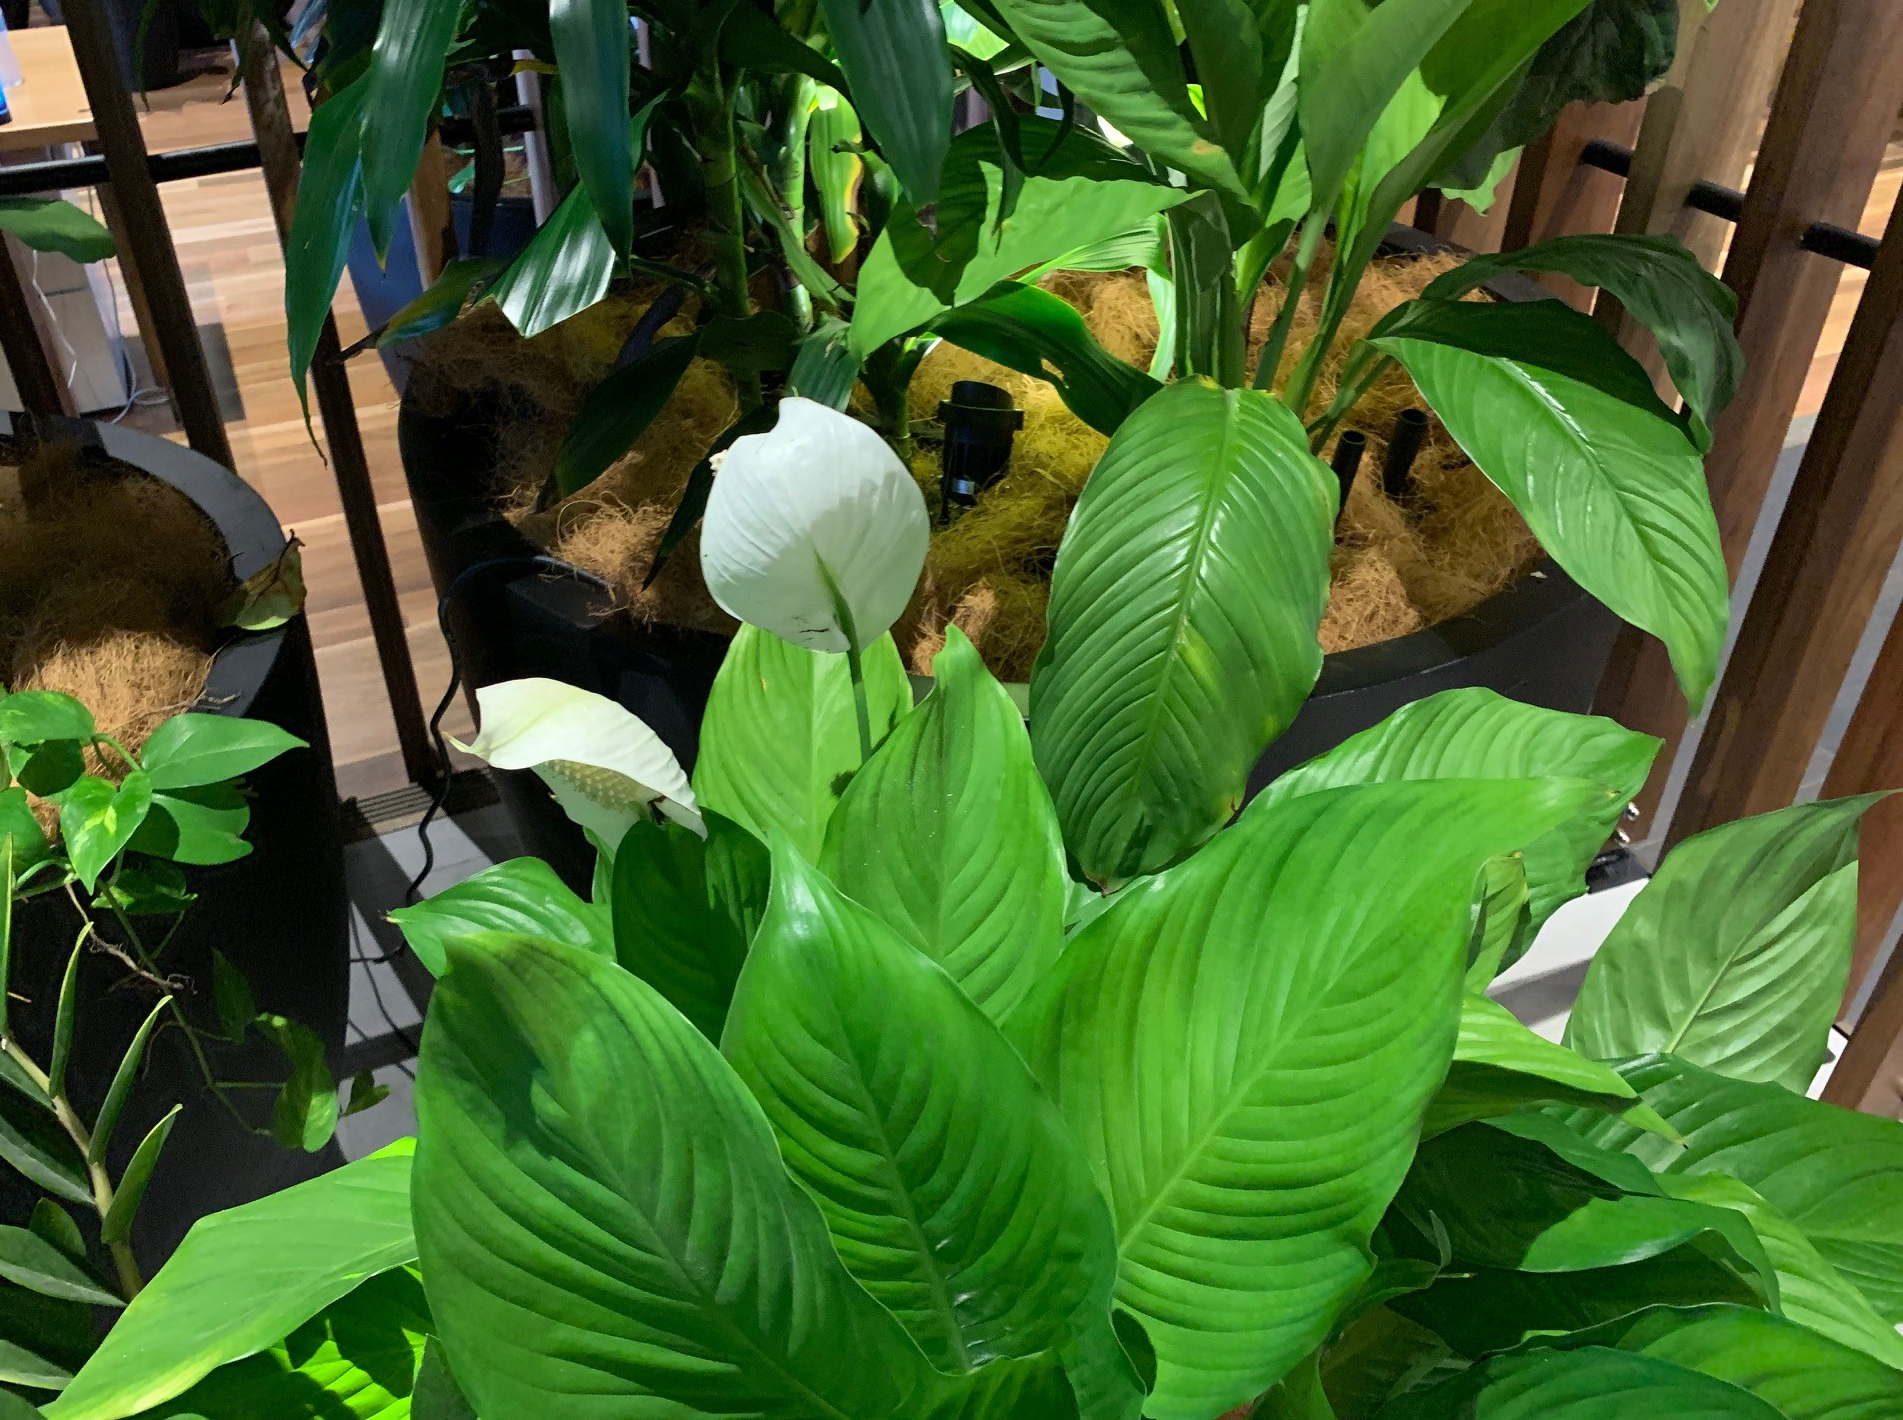 Lush Greenery showing a flowering Spathiphyllum (Peace Lily) in the foreground.